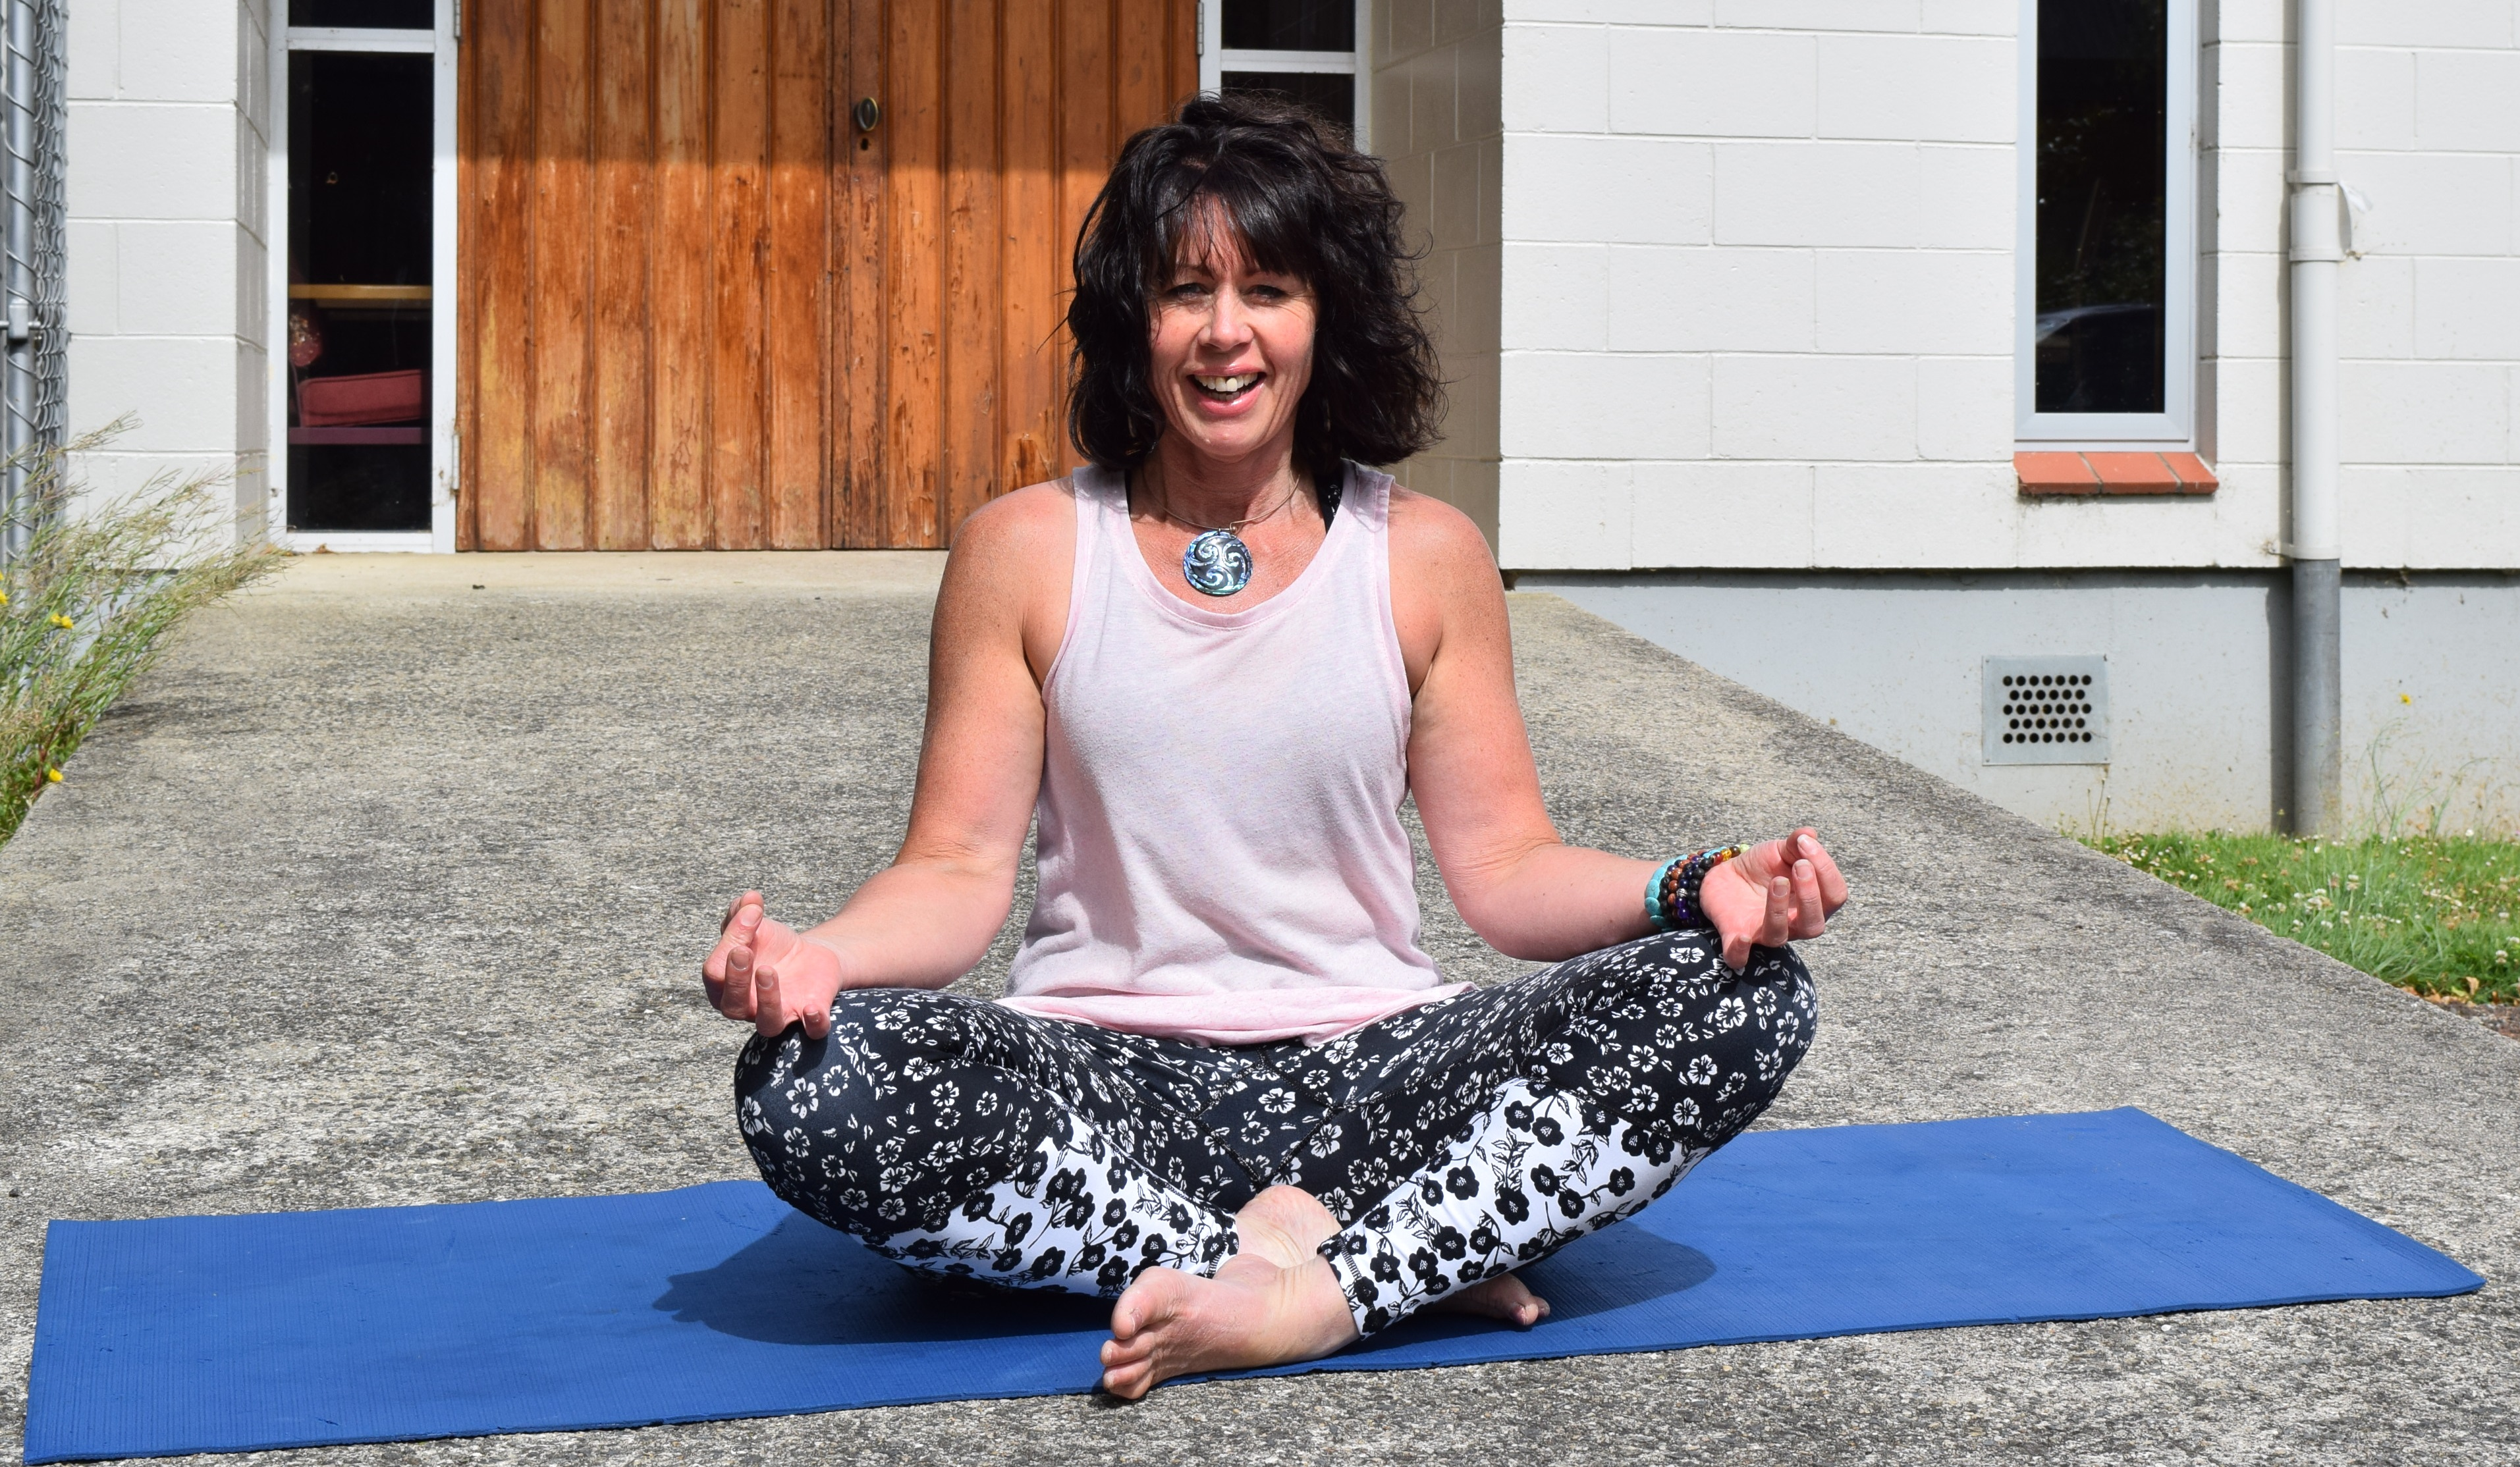 Blissful Souls Yoga owner and teacher Aaron Kyle is starting more of her classes in Mosgiel today...